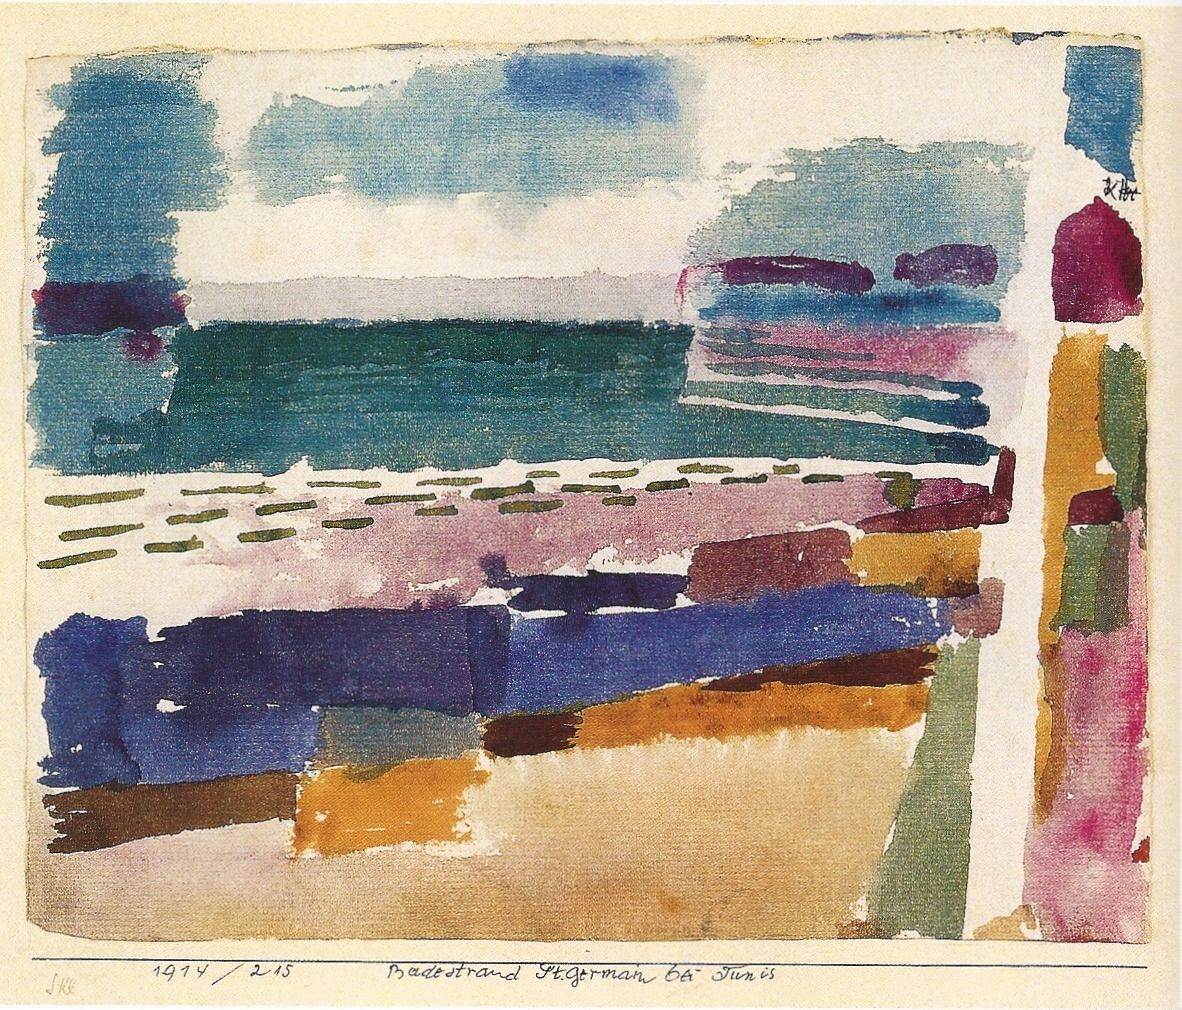 La plage di St. Germaine. Paul Klee